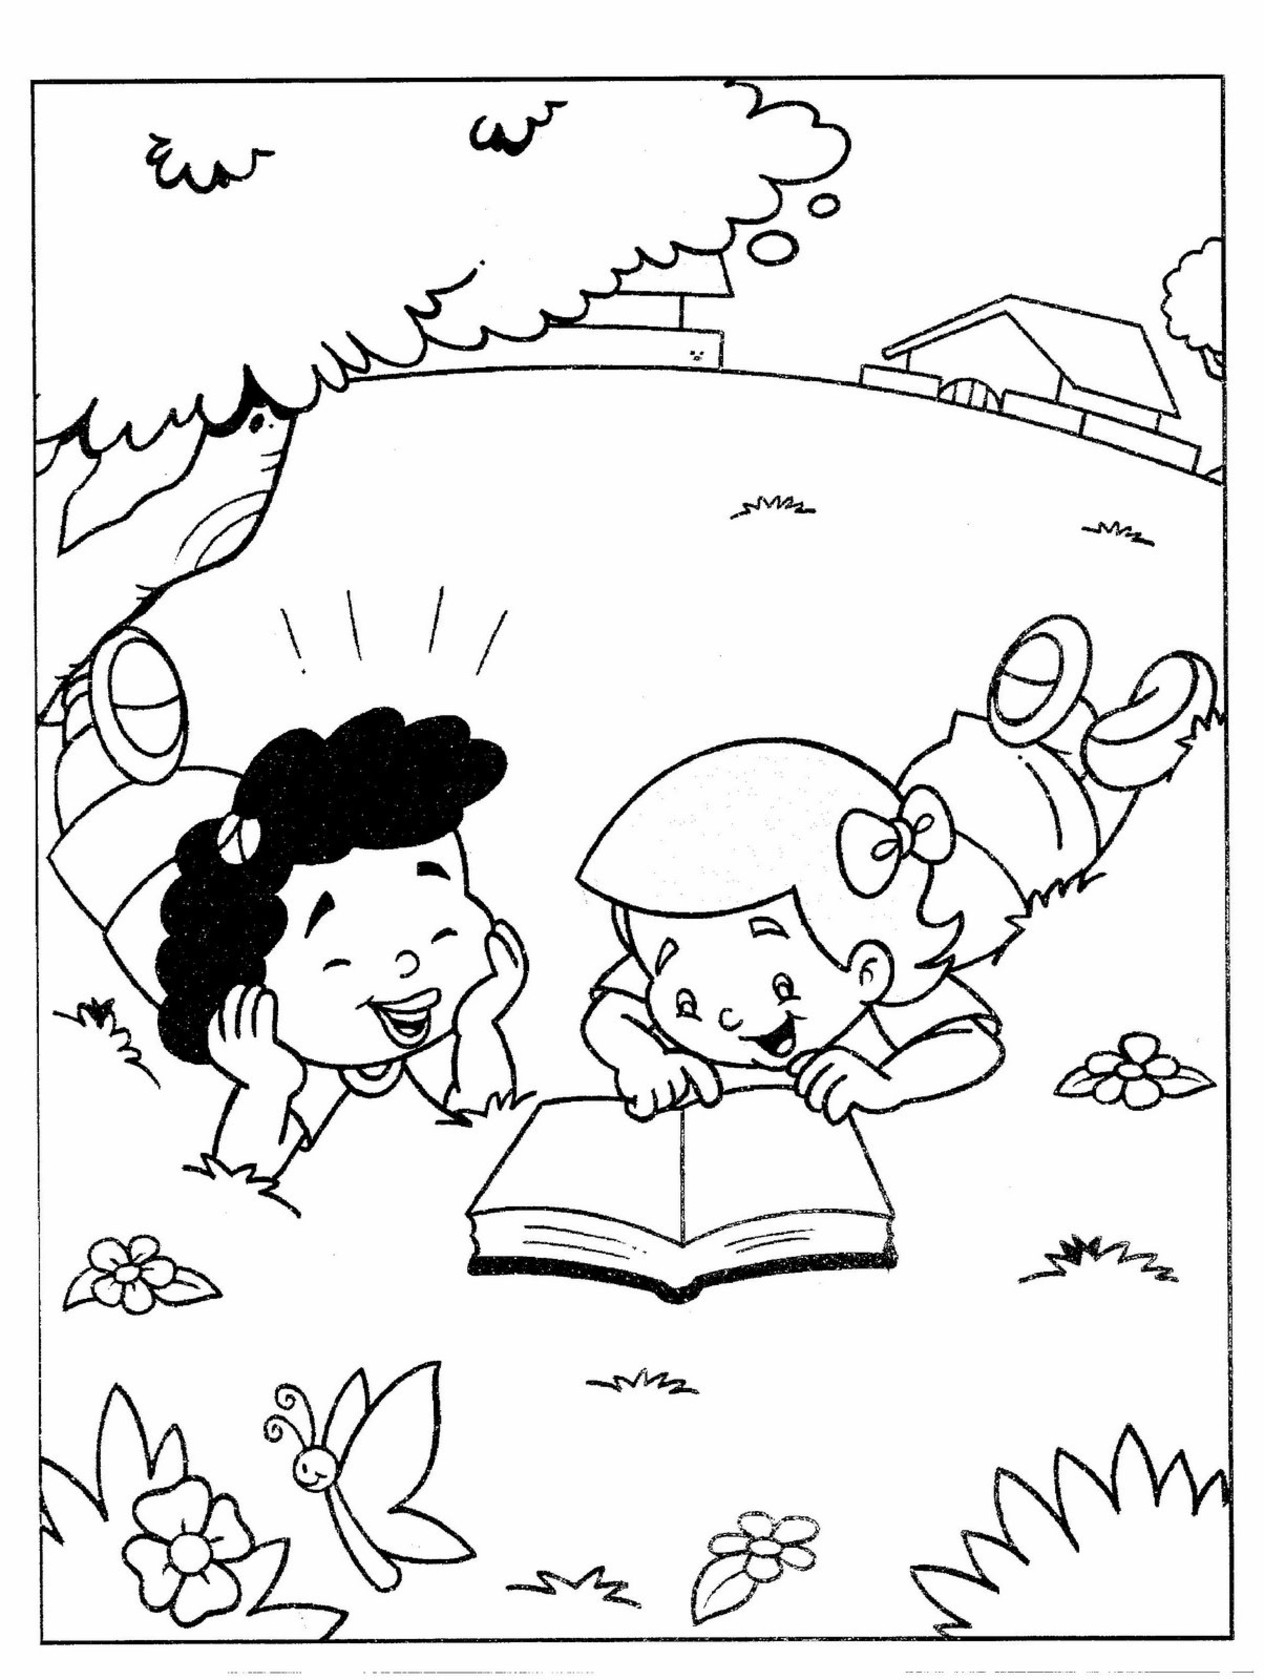 reading coloring worksheets reading coloring pages printables classroom doodles reading coloring worksheets